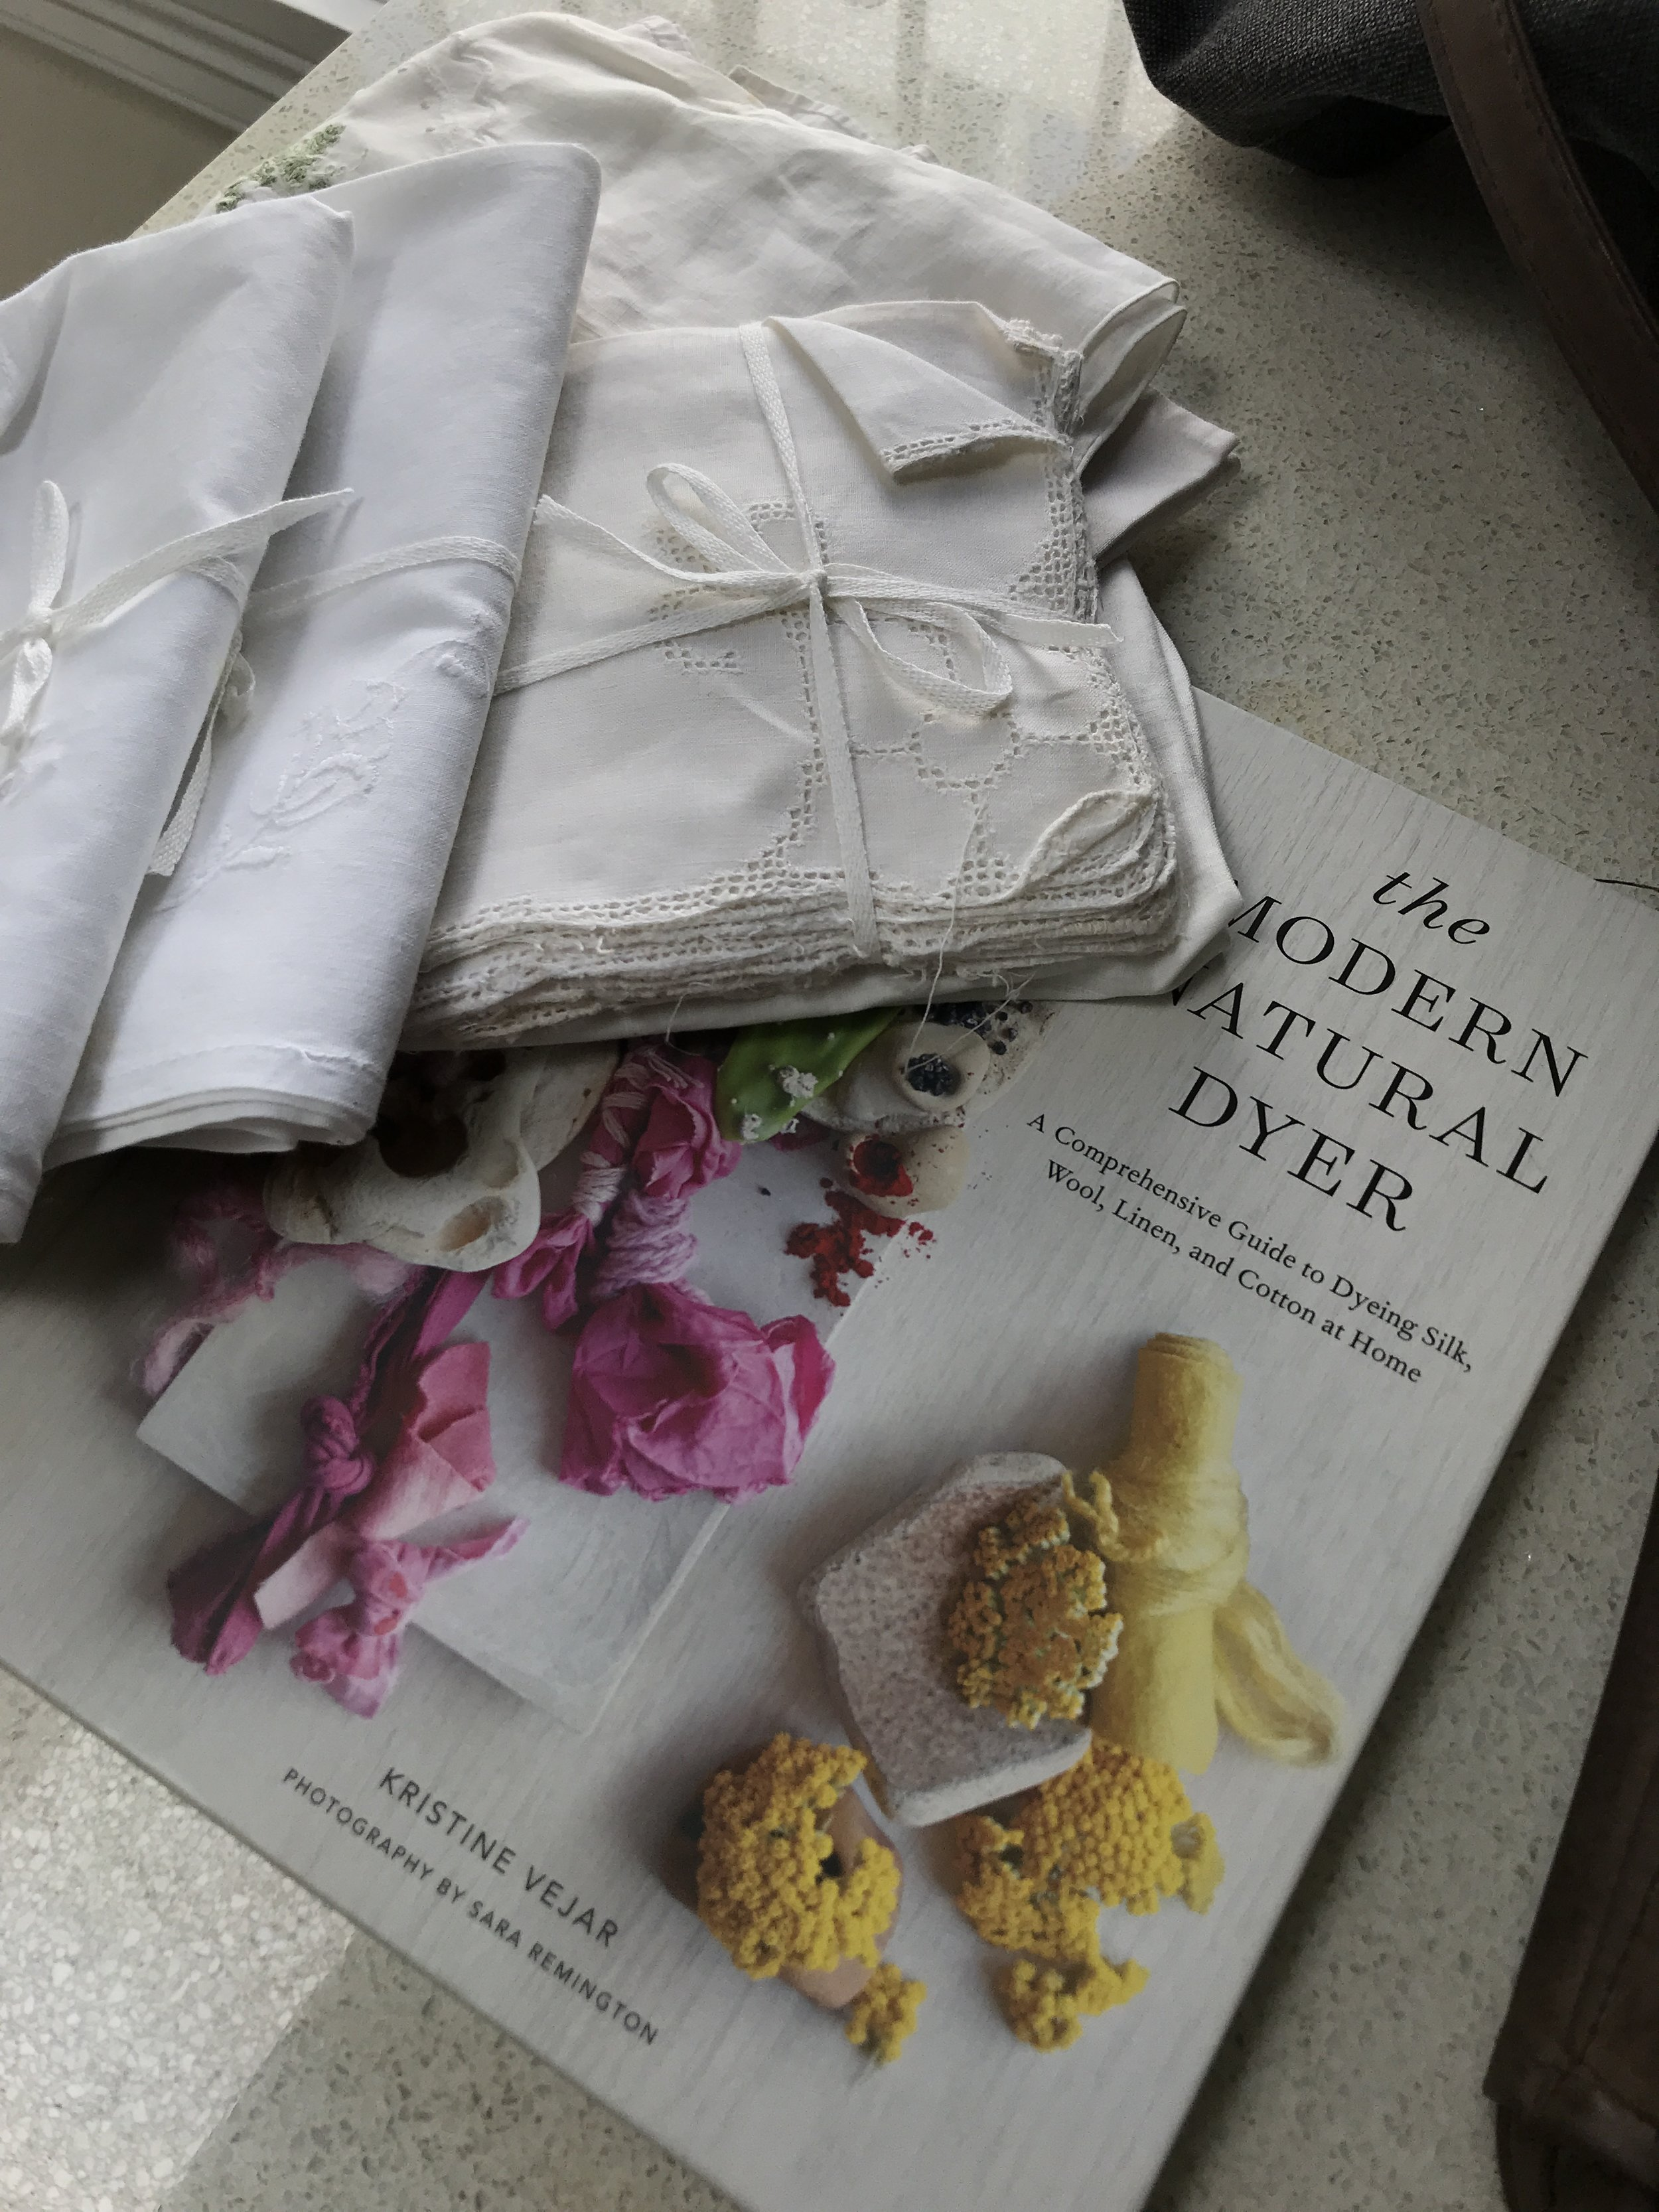 Some beautiful linen and cotton fabrics from the wonderful Rozelle Collectors Market - perfect to experiment on - although they are so beautiful - I hope the colours look Ok.